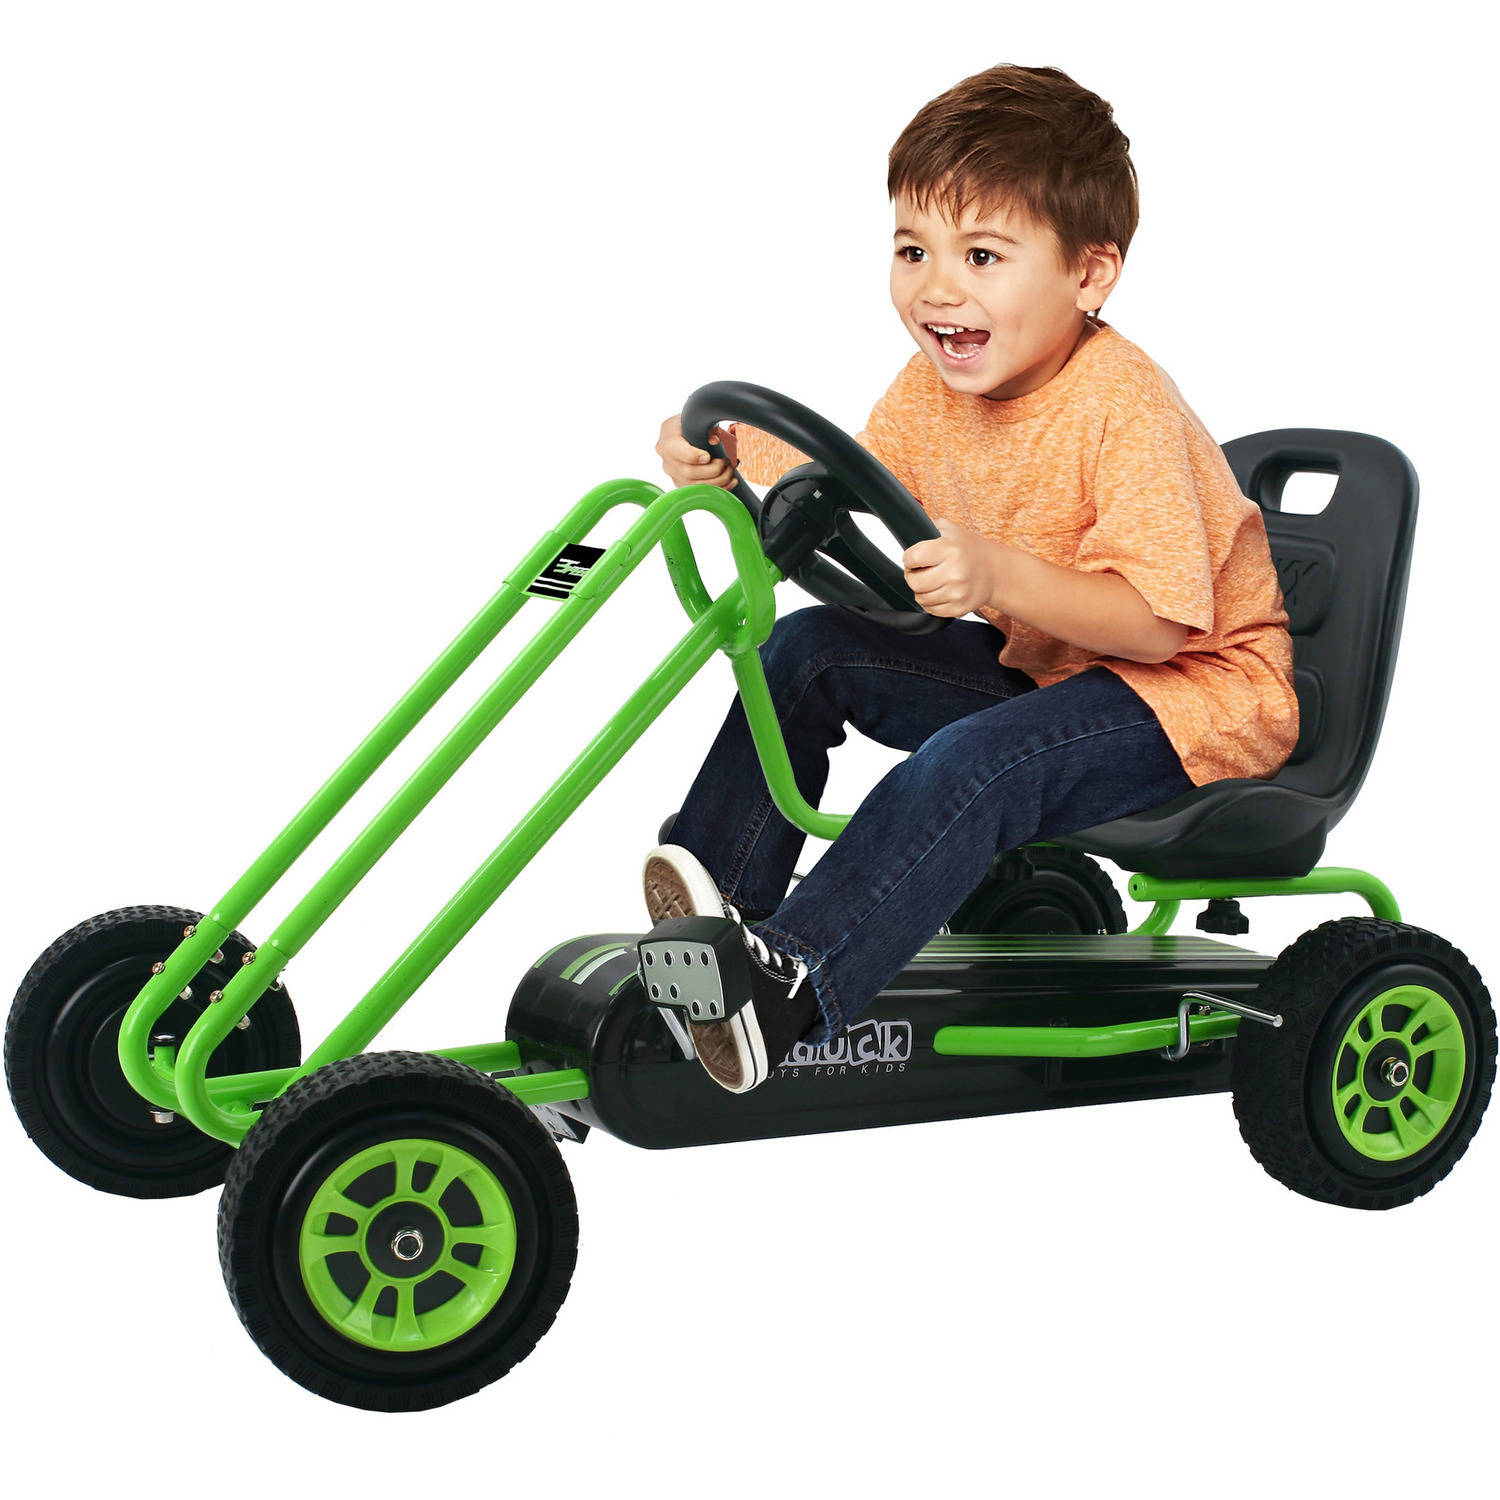 Speed Pedal Go Kart, Green